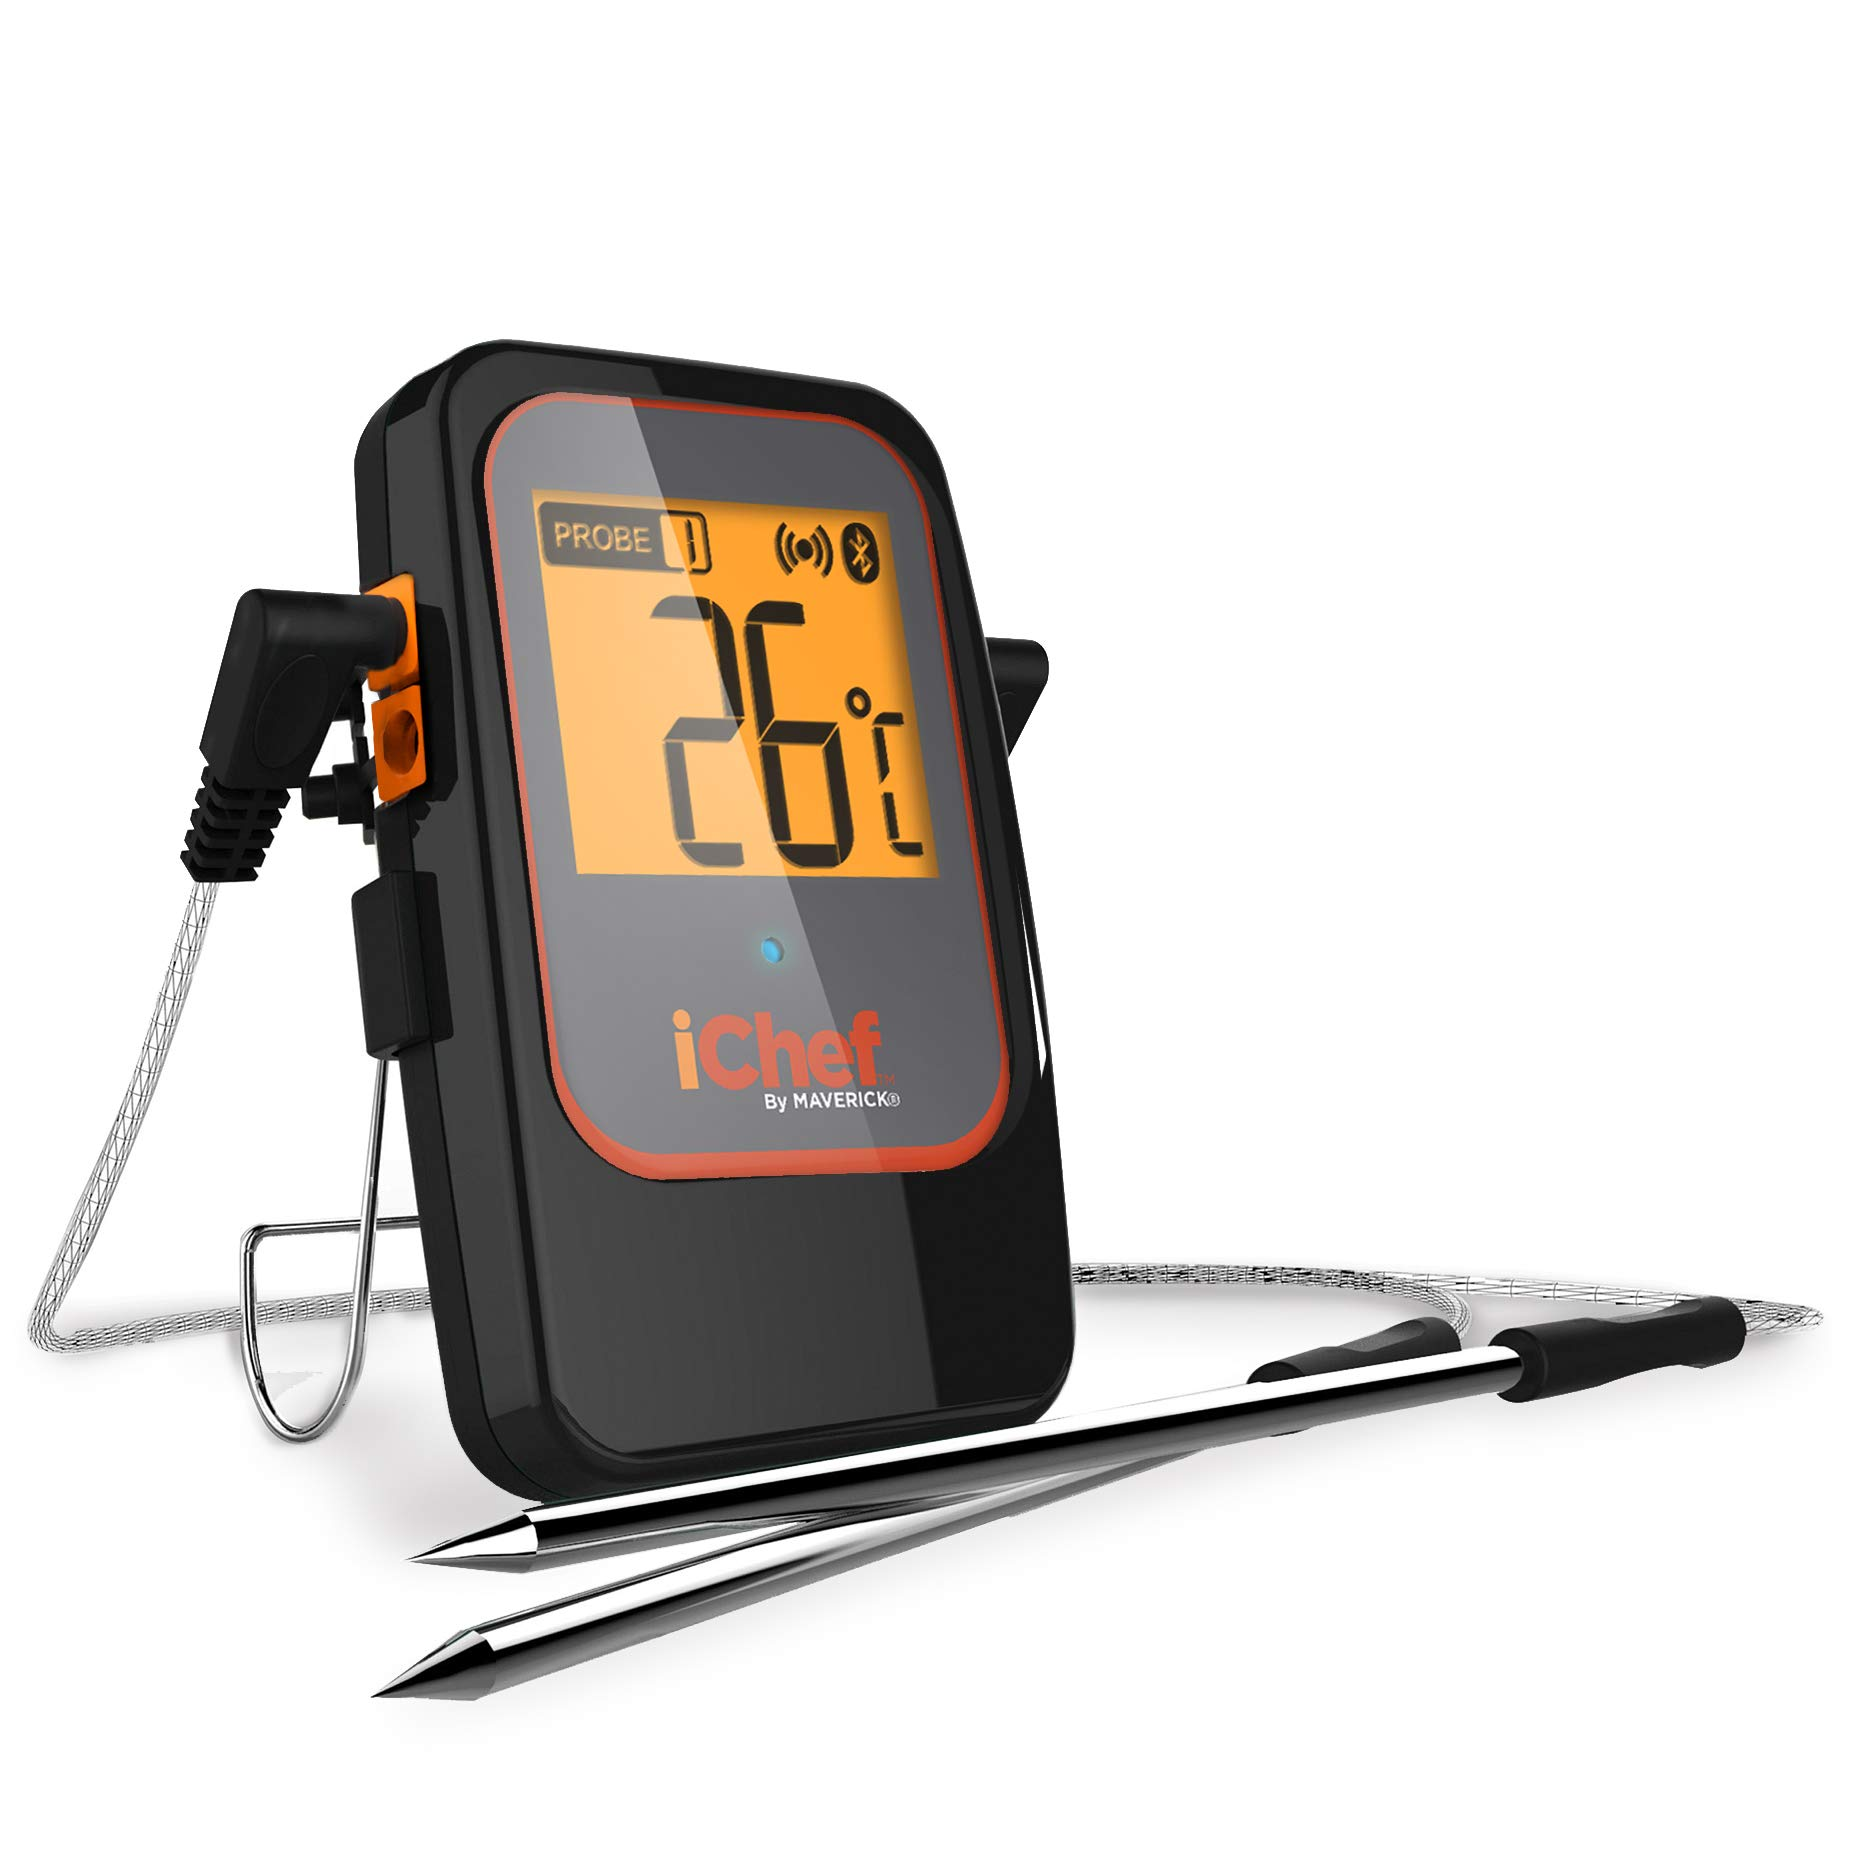 Maverick BT-600 iChef Bluetooth Digital Instant Read Cooking Kitchen Grilling Smoker BBQ Wireless Probe Meat Thermometer, Black by Maverick